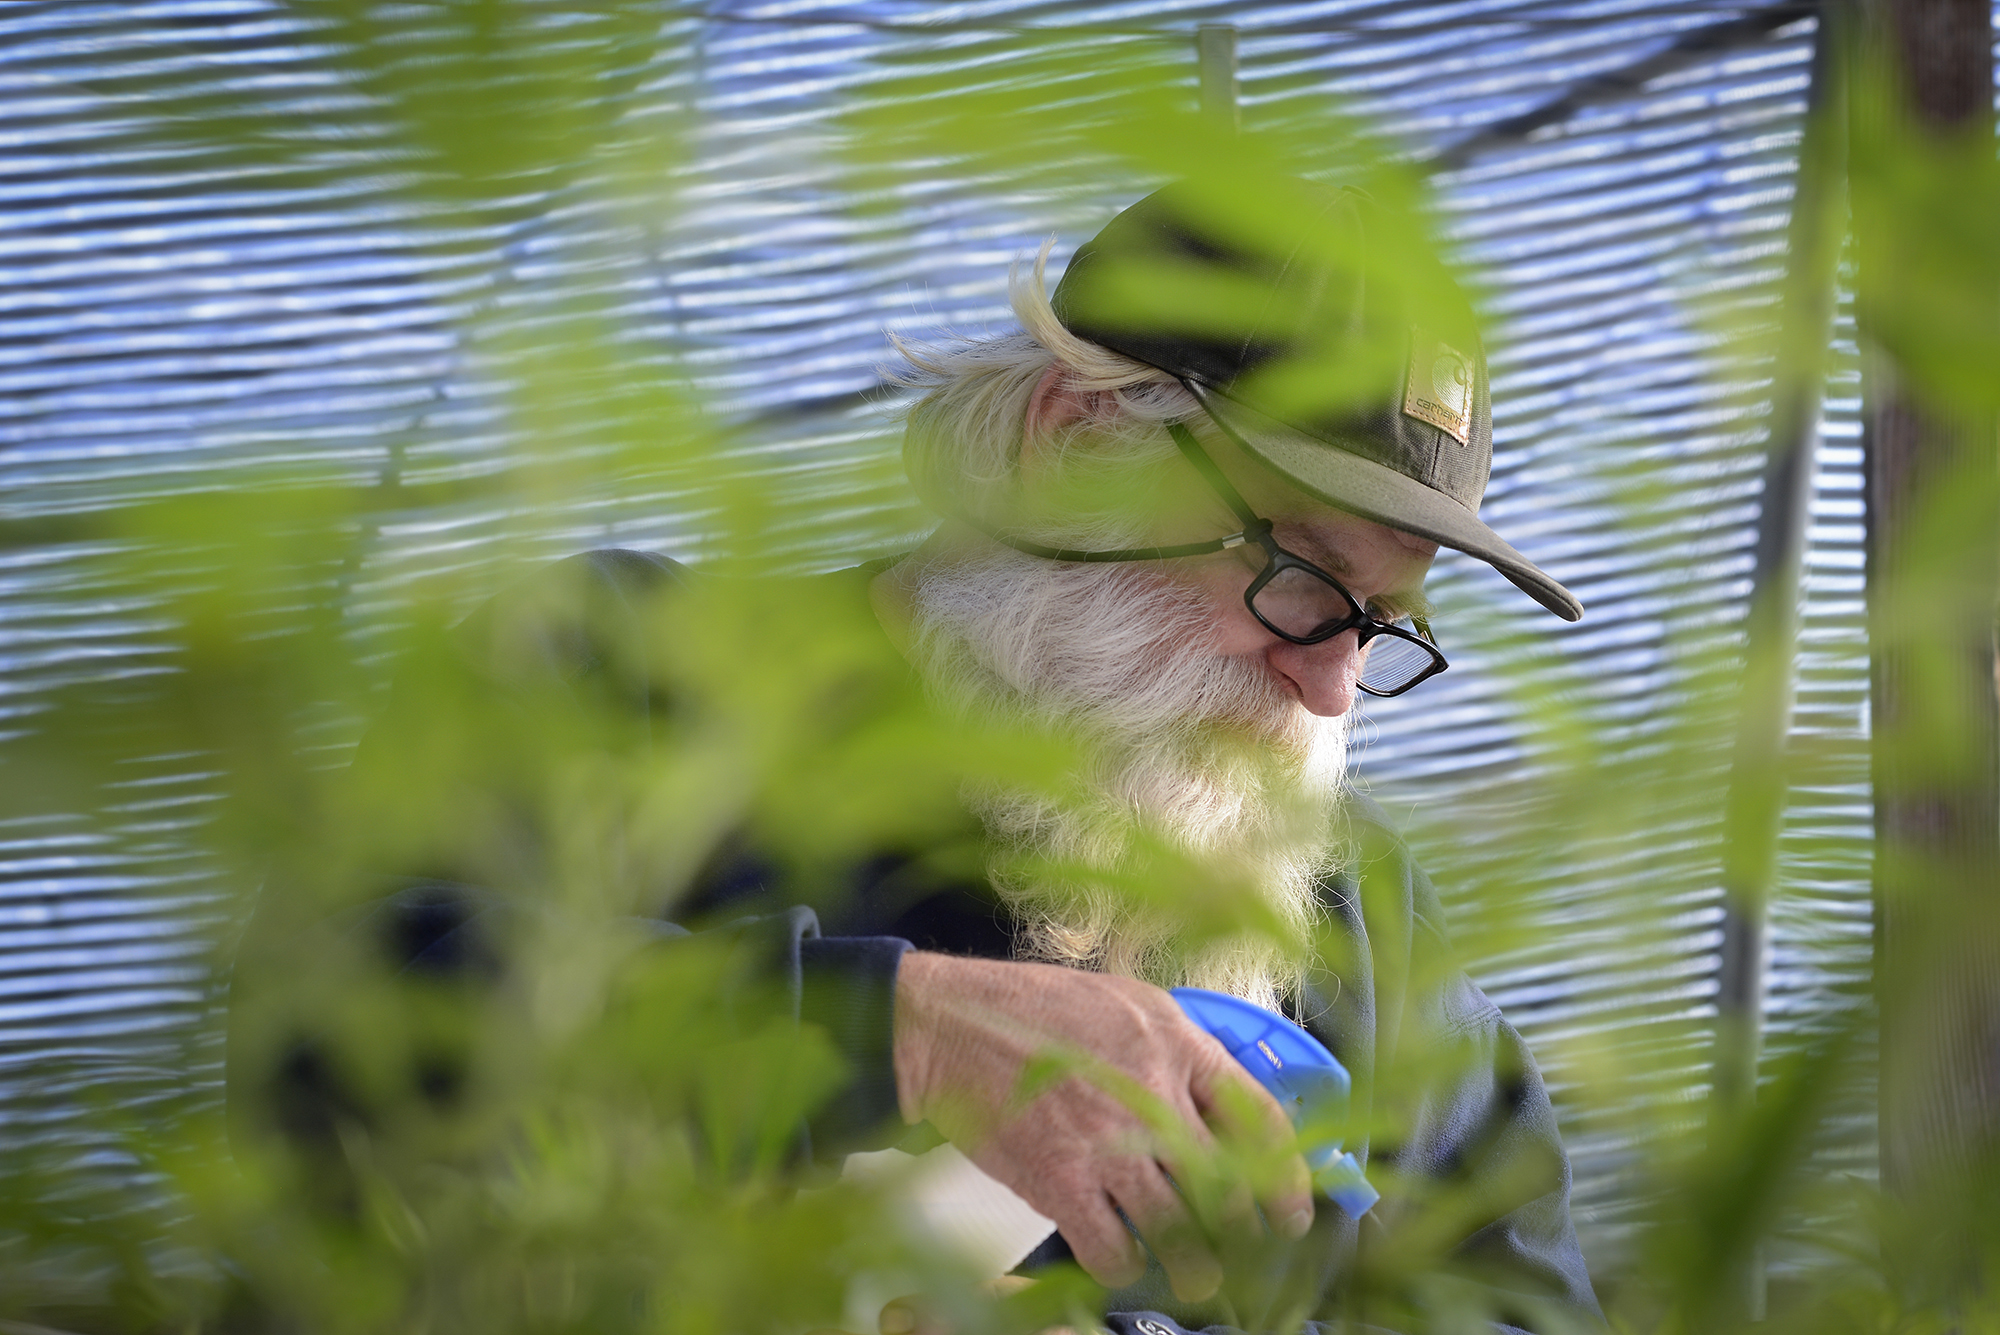 Tom Lauerman, a Vancouver medical marijuana farmer, sprays water over marijuana seeds on his farm on February 12, 2015. Lauerman, who was arrested for growing marijuana at his collective in California in 1990, is now working with the federal government to help establish the first ever safety standards for marijuana workers in the U.S. (Ariane Kunze/The Columbian)